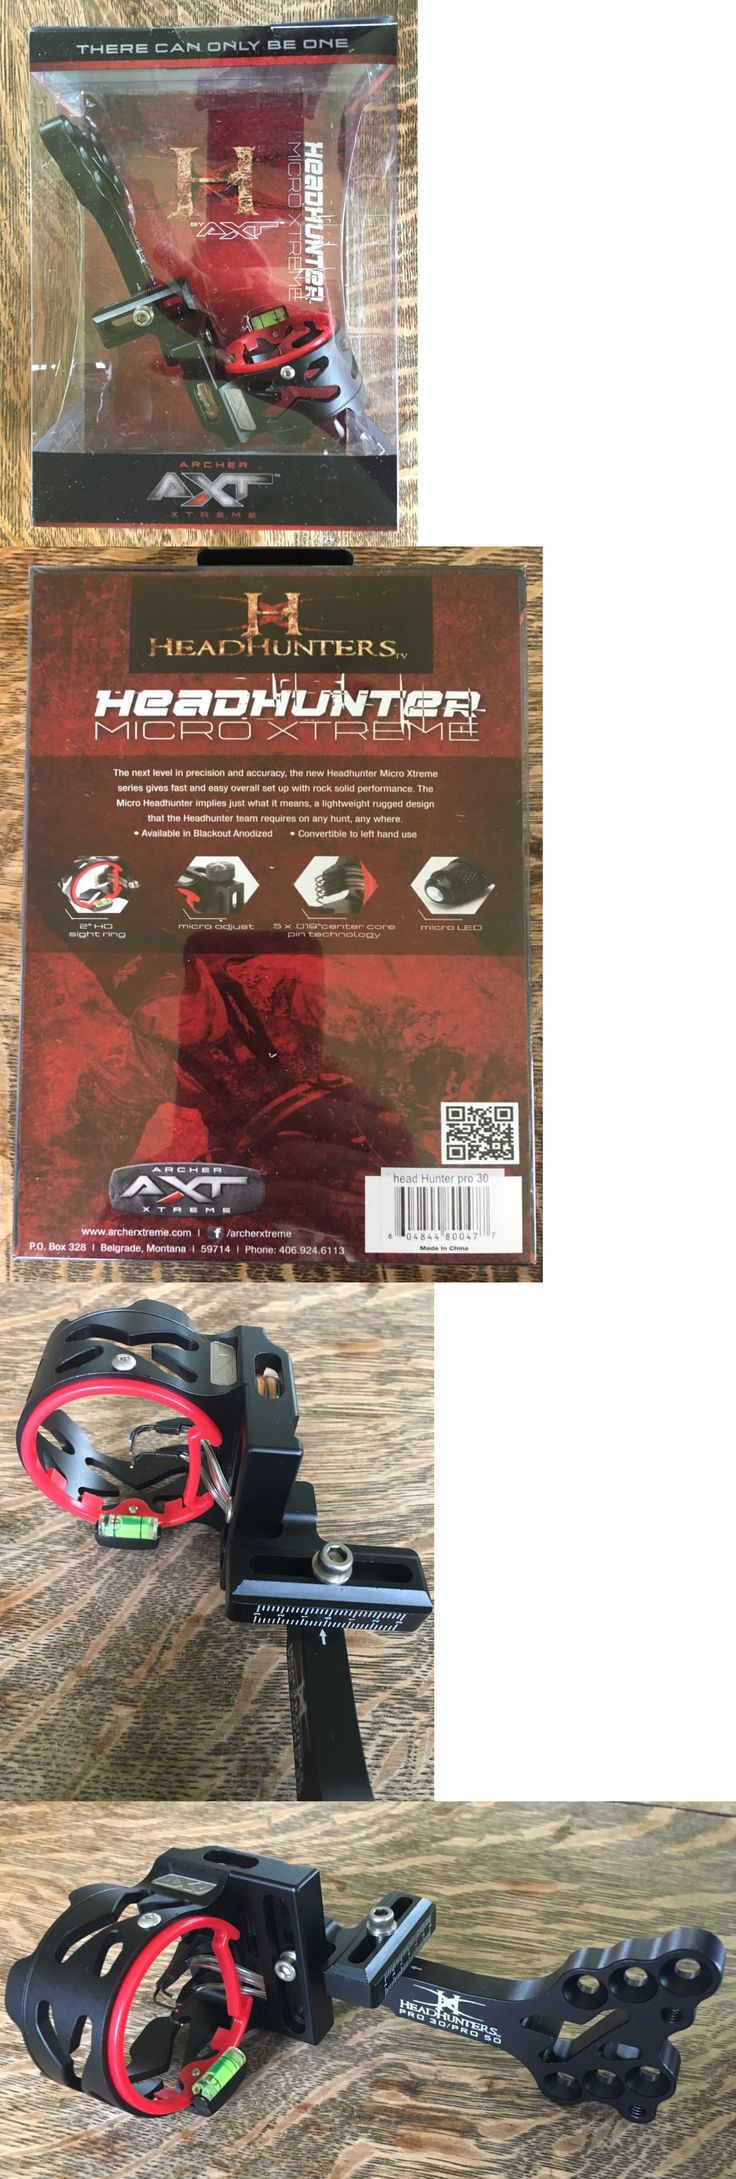 Sights 20845: Archer Xtreme Hh30b Axt Head Hunter Pro 30 3-Pin 0.019 Bow Sight Black Blow Out -> BUY IT NOW ONLY: $51.47 on eBay!